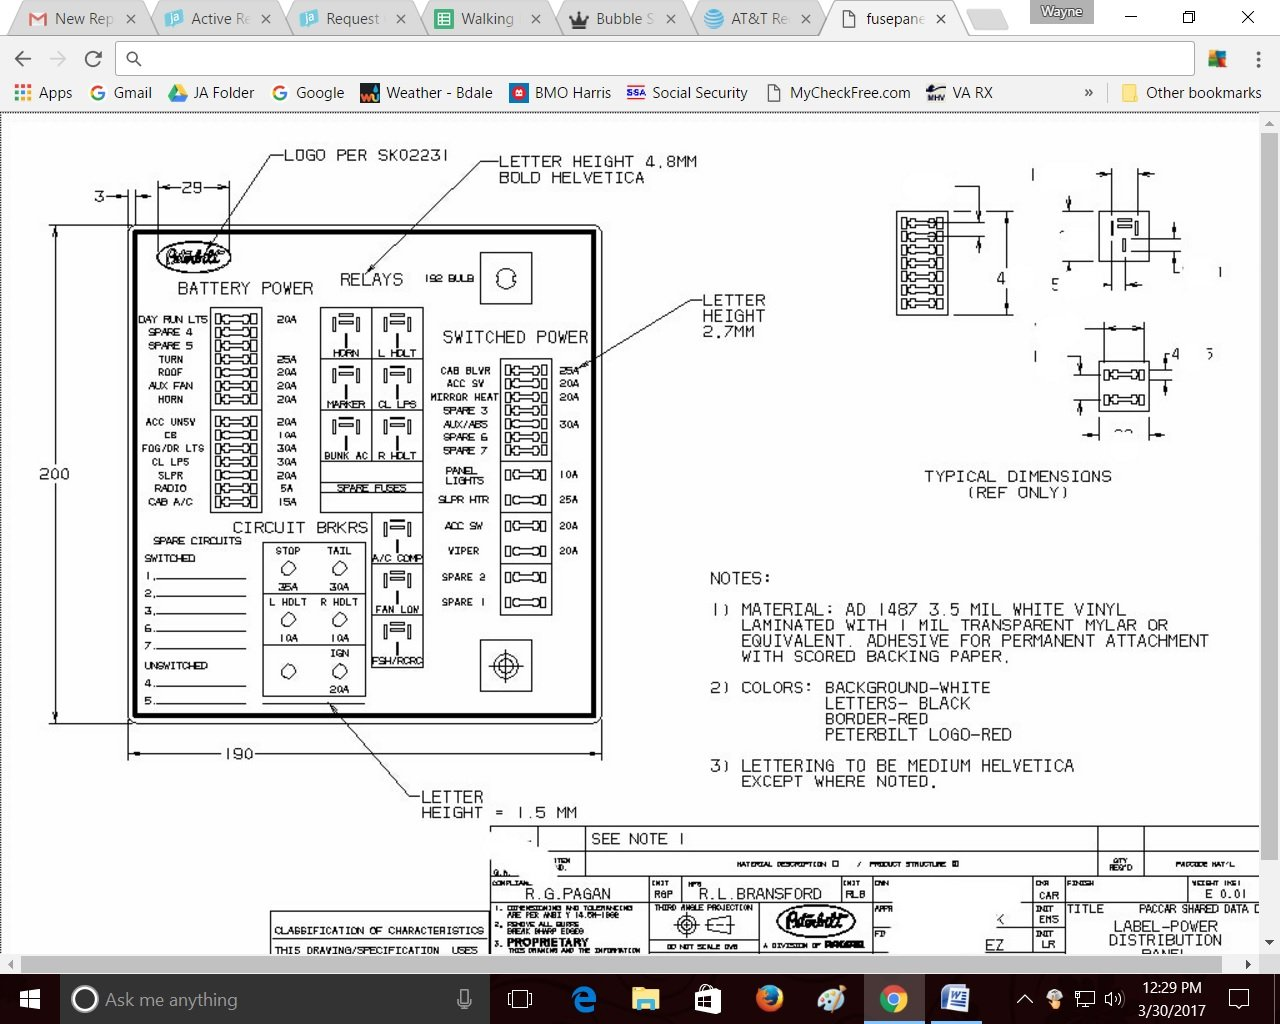 Peterbilt 2007 379 Fuse Box Diagram Guide And Troubleshooting Of 2006 Wiring Schematic Diagrams Scematic Rh 24 Jessicadonath De 2005 Heat Air Control